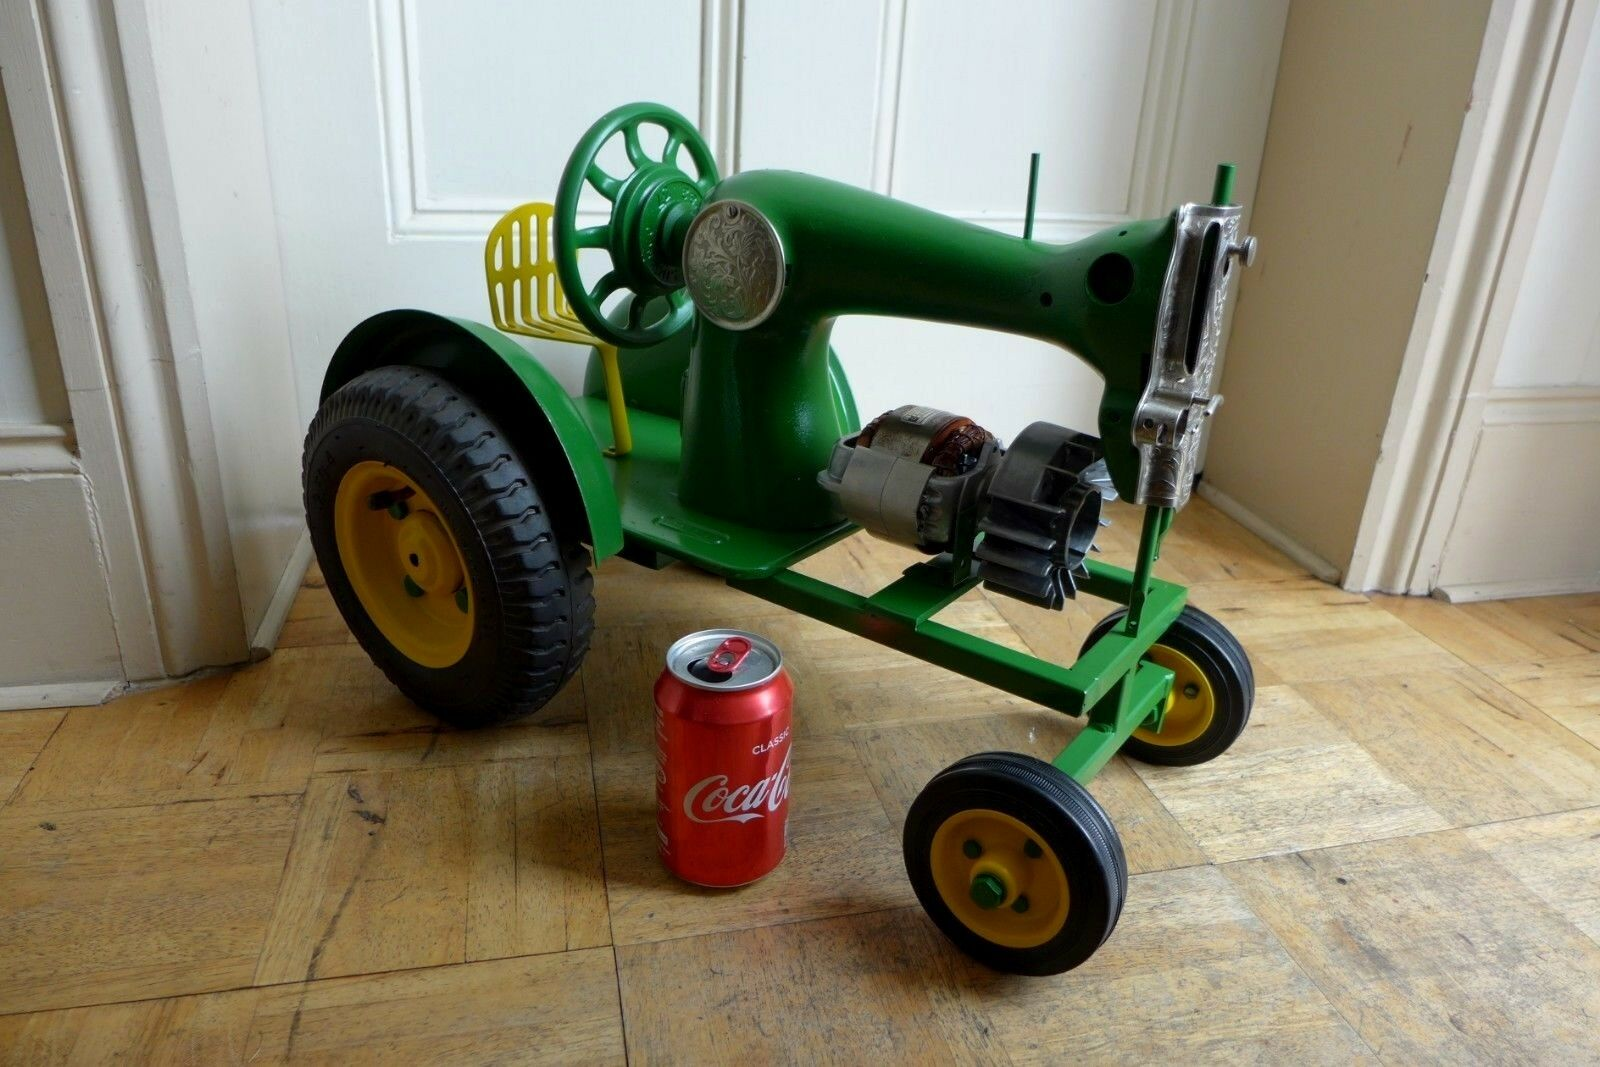 Metal model of the John Deere Tractor Playroom Home Art HANDMADE Collector Cool